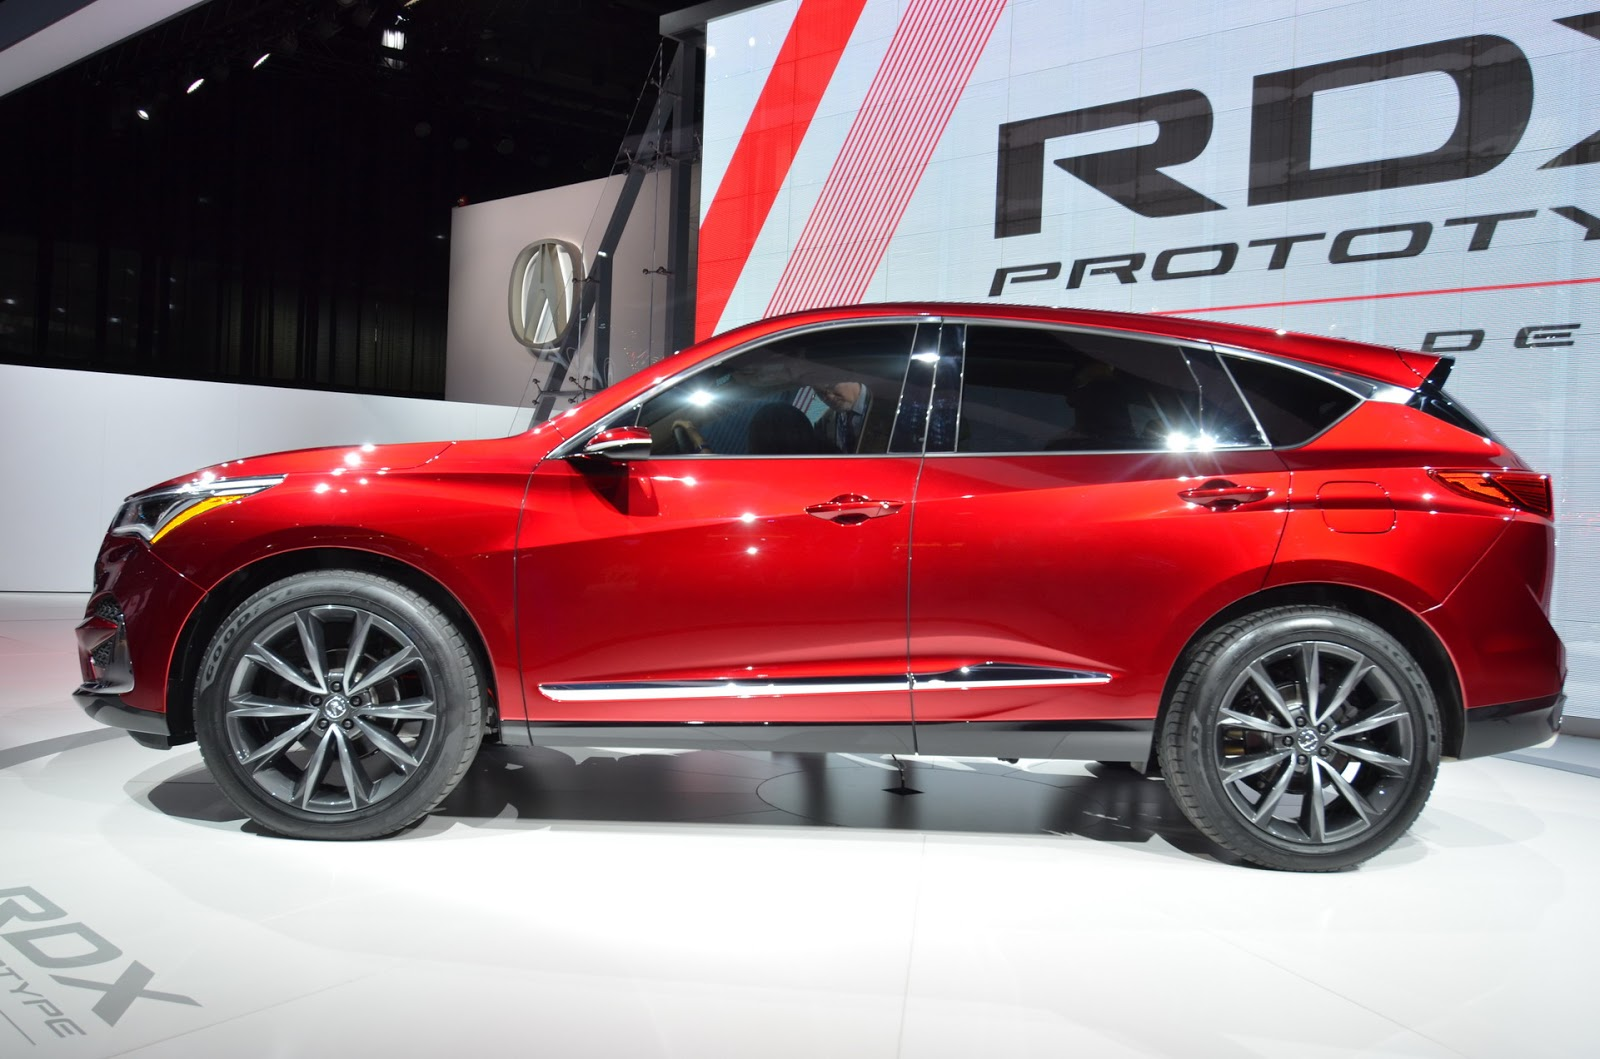 2019 Acura RDX Prototype (Almost) Ready For The Road ...